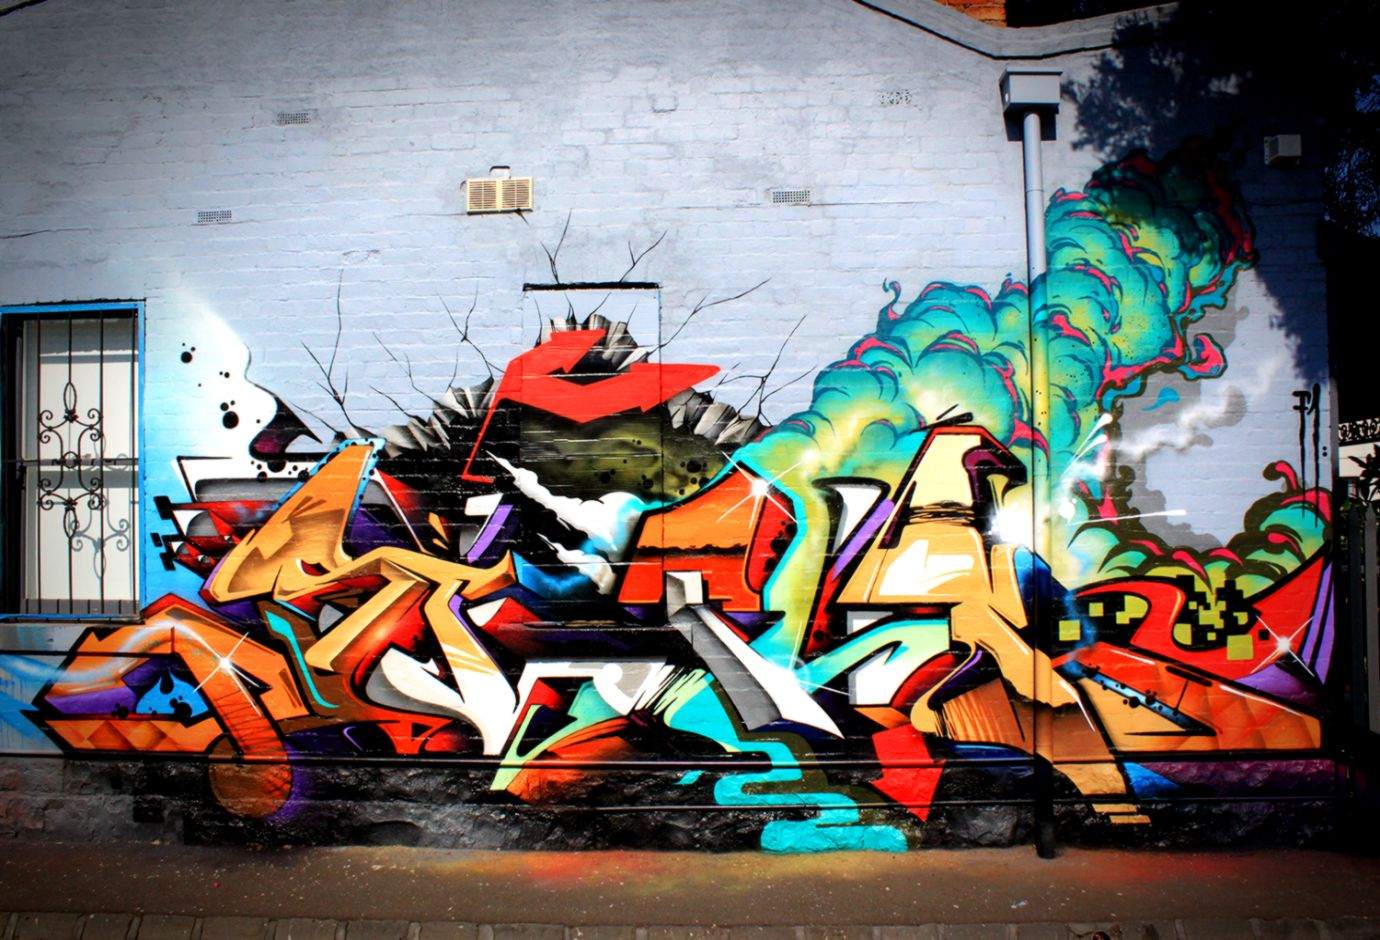 Graffiti Background Wall Street Art - Street Art Wall Background , HD Wallpaper & Backgrounds